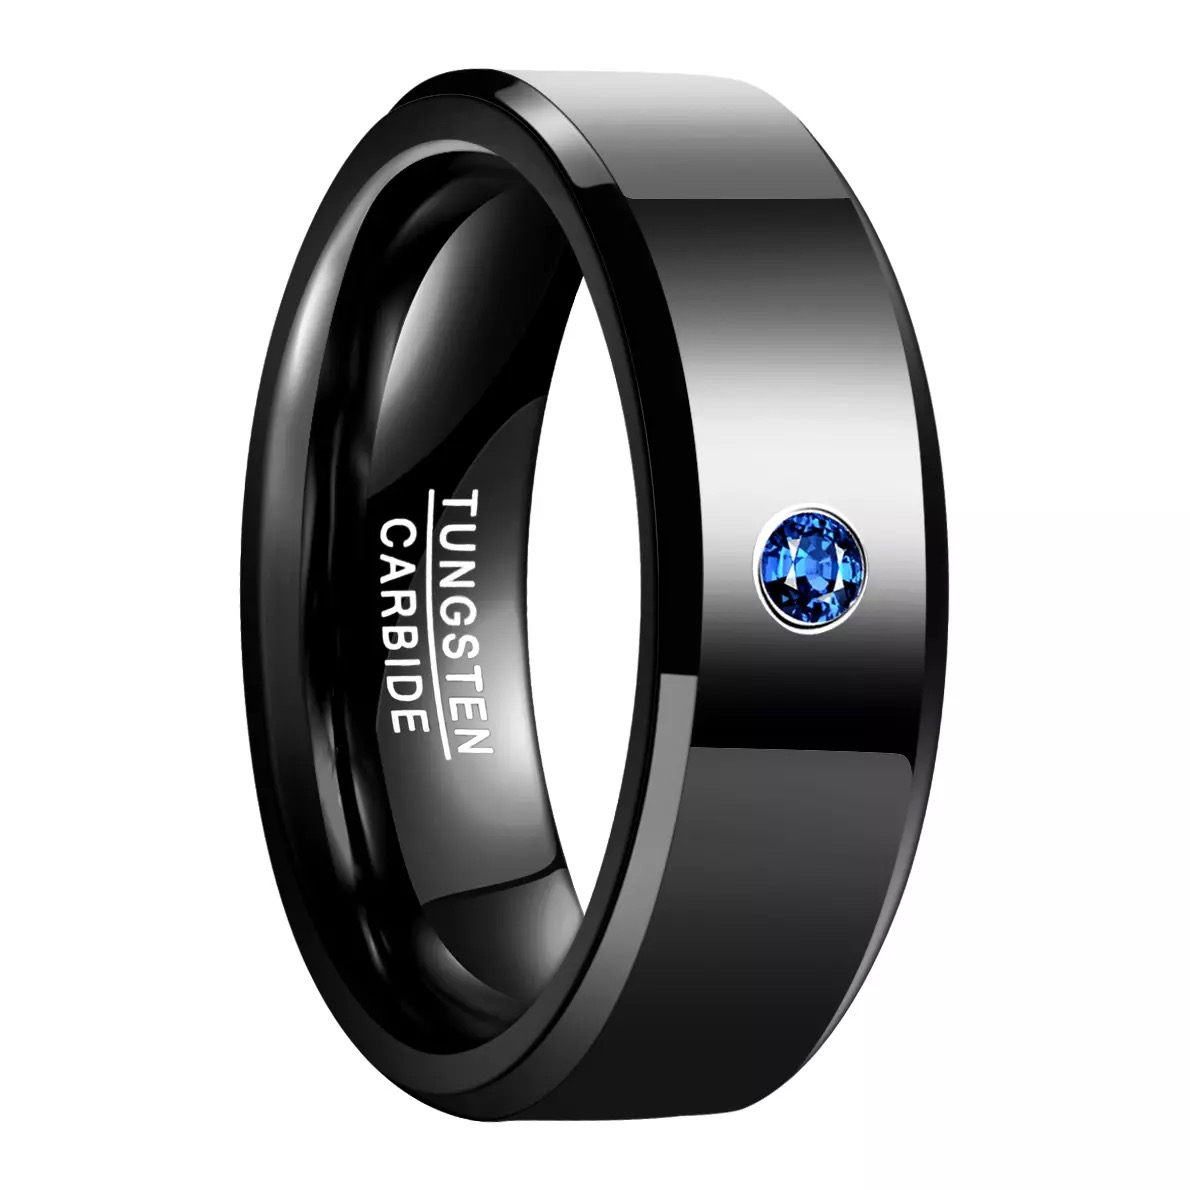 Harold Tungsten Ring, Men's Rings Online, Men's Ring Just Rings Online, Free Express Postage, Free Shipping, Australian Stock , Fast Service, Easy Exchange, Free ring sizer, Ladies Ring, Womens wedding , Ladies wedding band, Gold Tone